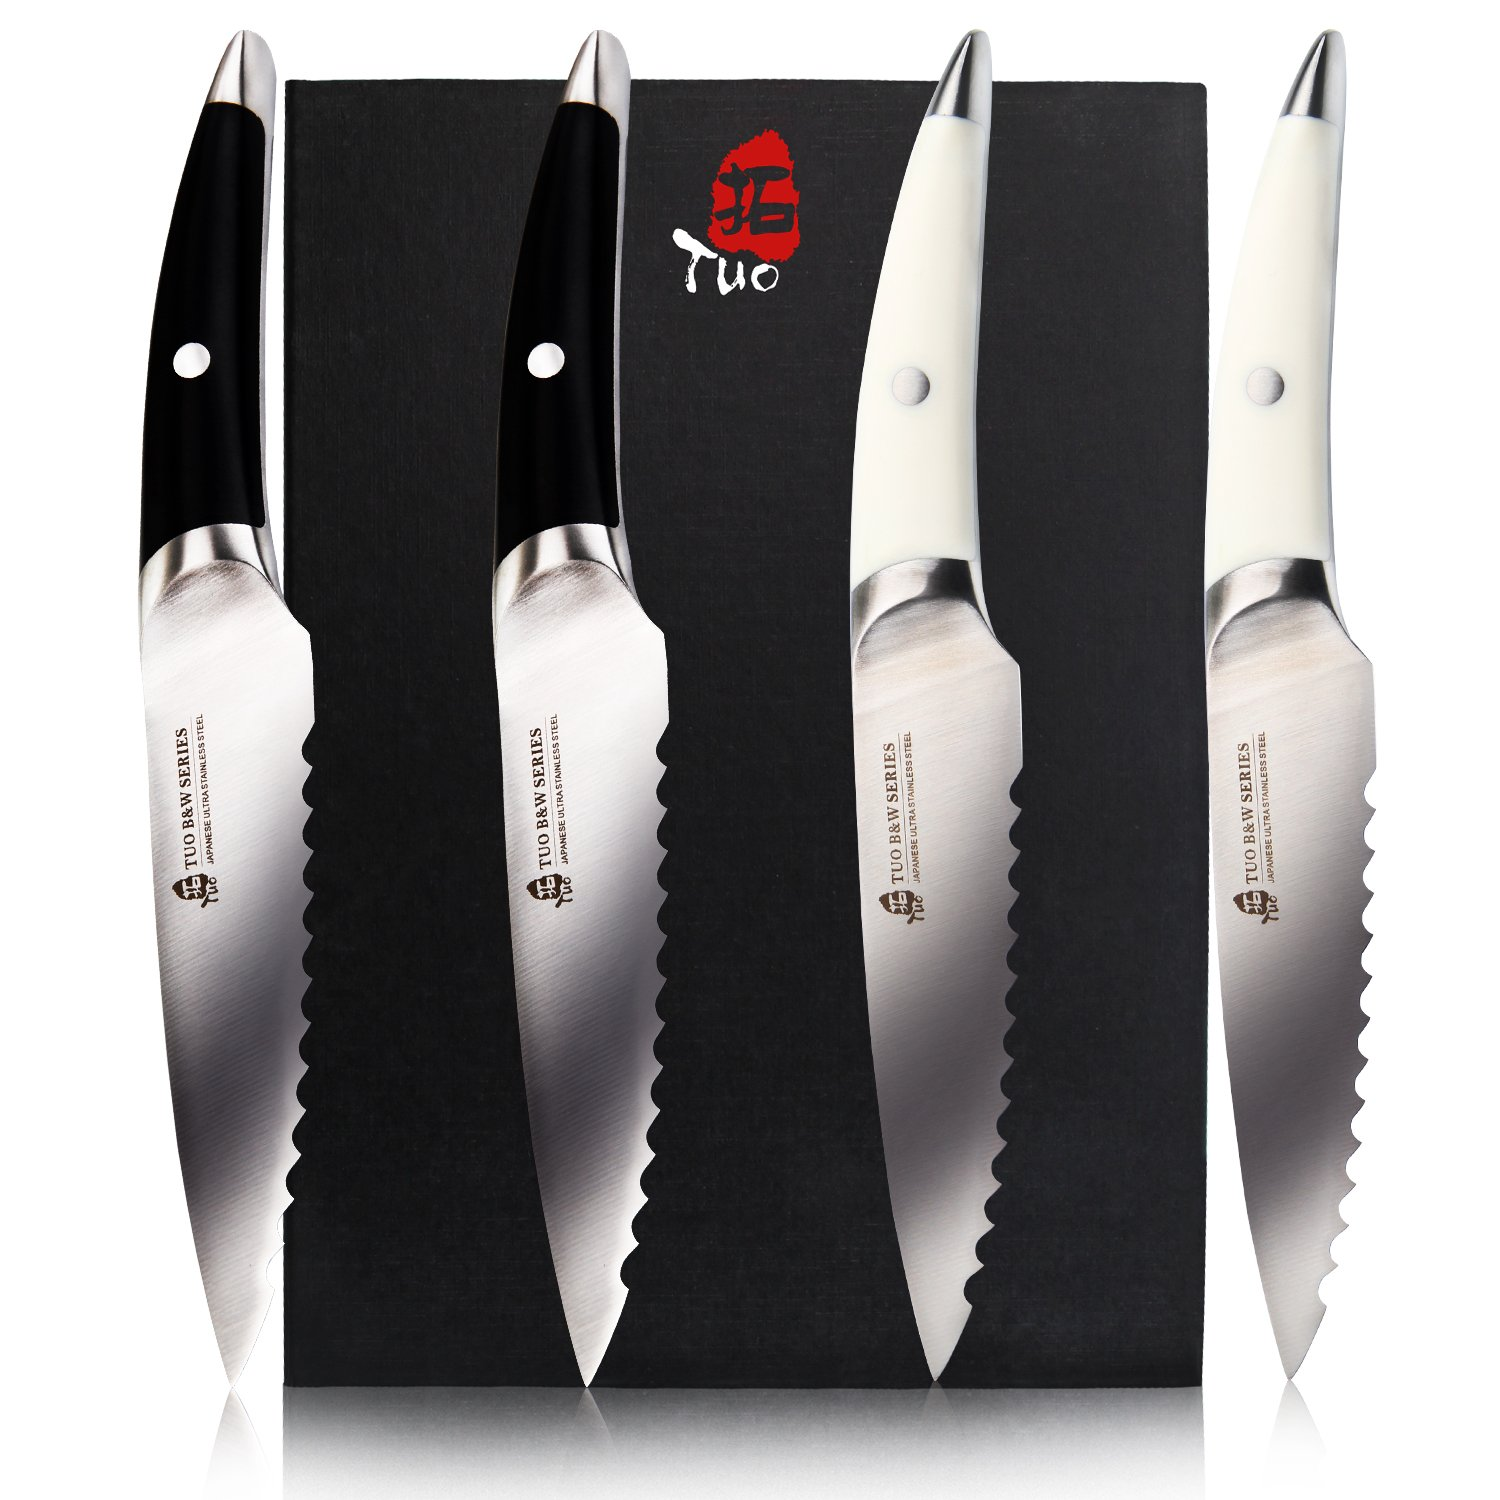 TUO CUTLERY Black&White Steak Knife Set 4 PCS 5''- Japanese Ultra Stainless Steel Kitchen Knife with Balanced Comfortable Handle - B&W Series